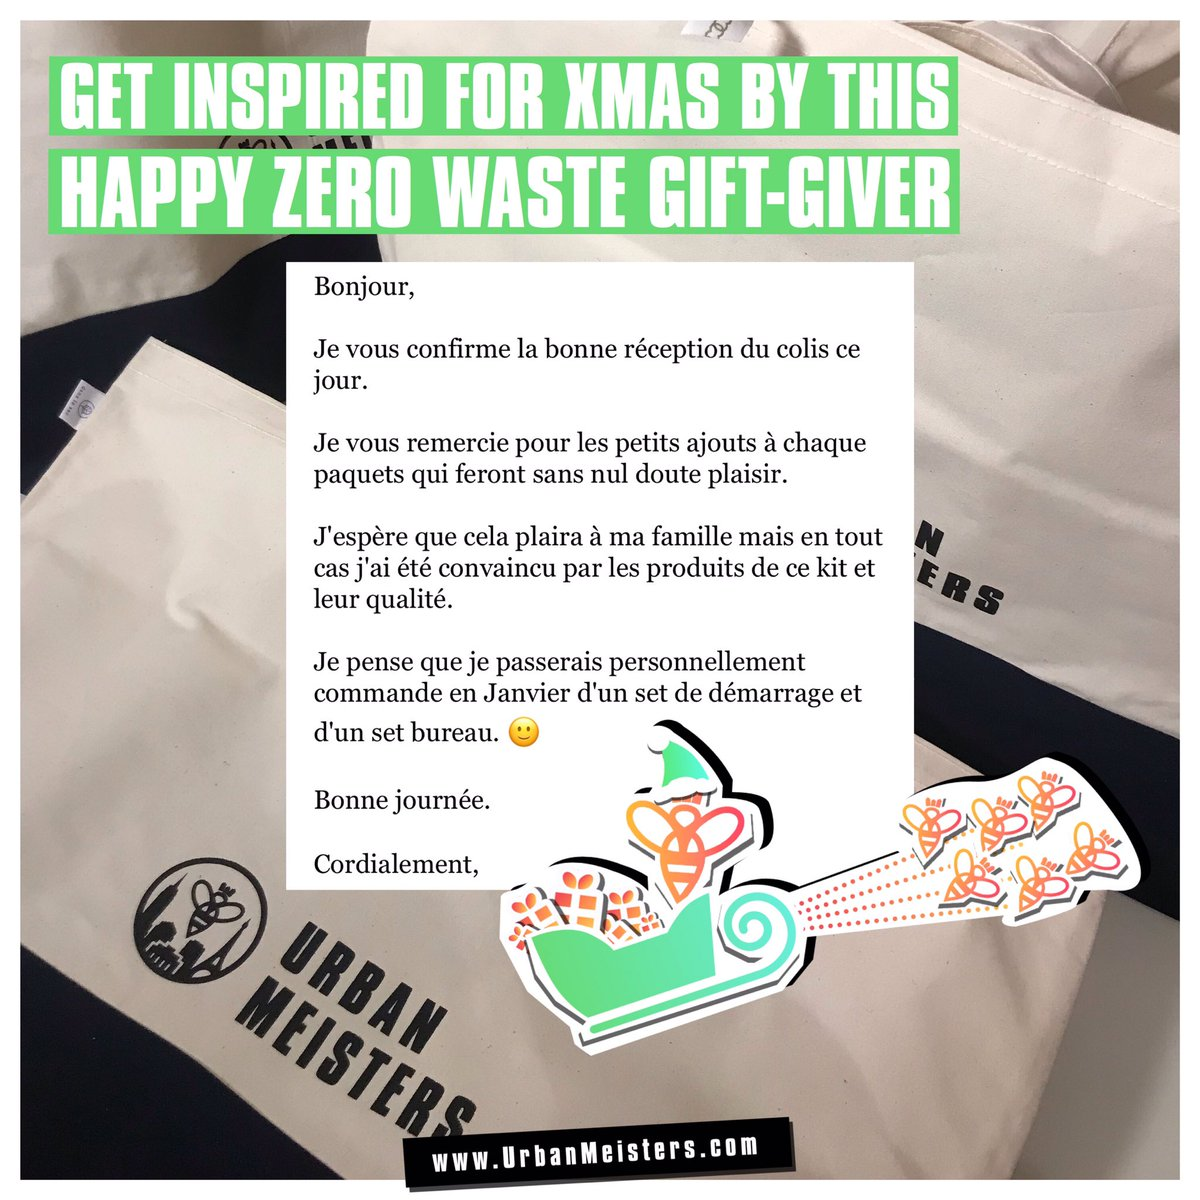 #Sustainability for #Xmas helping your #family and #friends kick-off a #zerowaste #plasticfree and #healthy lifestyle with #gifts that last and make sense —>  #zerodechet #ecolo #cadeaux #giftideas #actonclimatechange